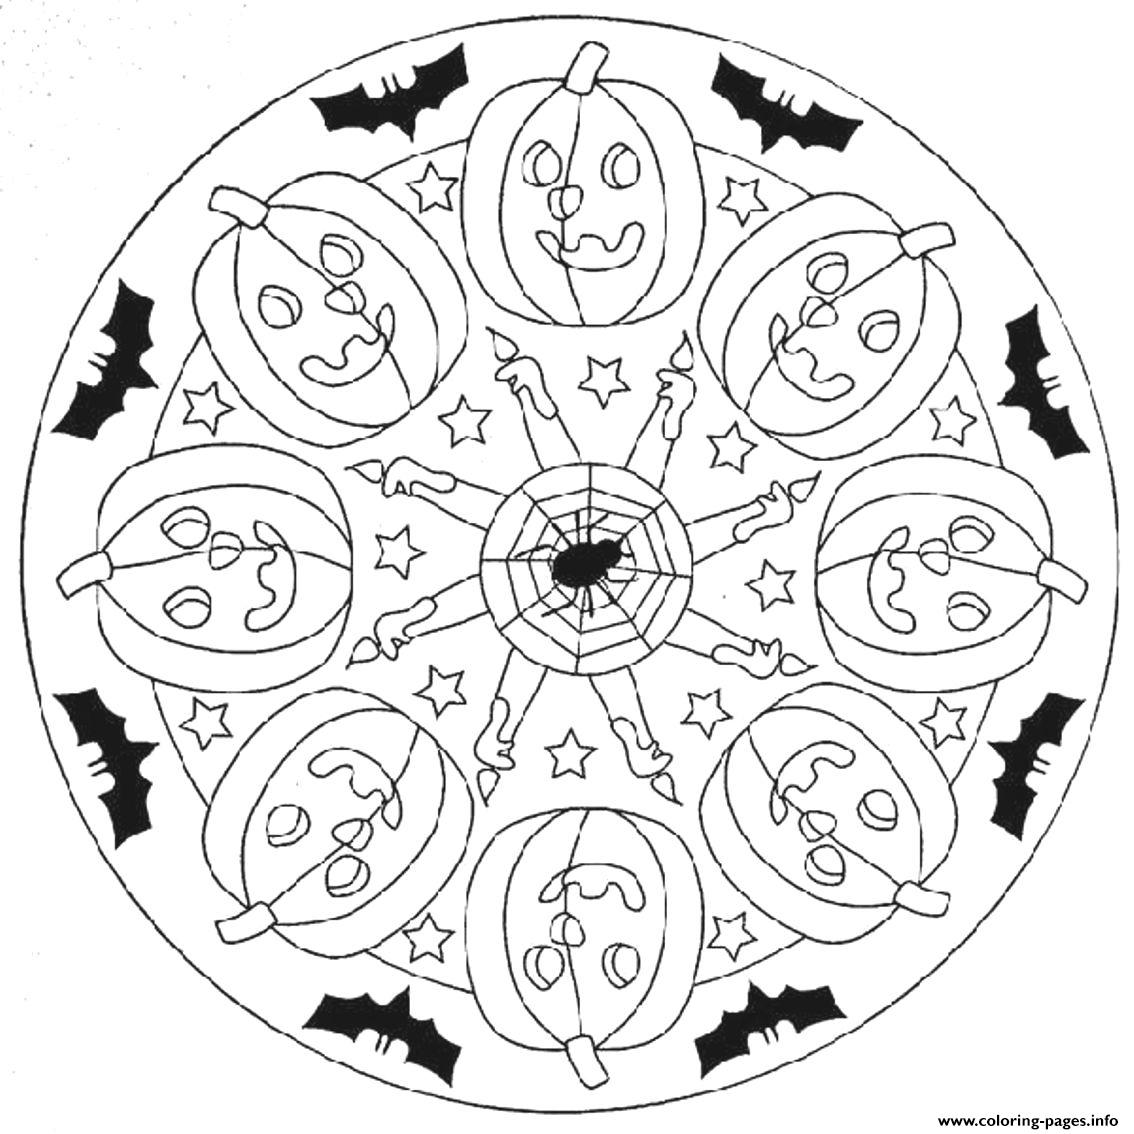 halloween mandala coloring pages free printable halloween mandala coloring pages 1 coloring mandala pages halloween